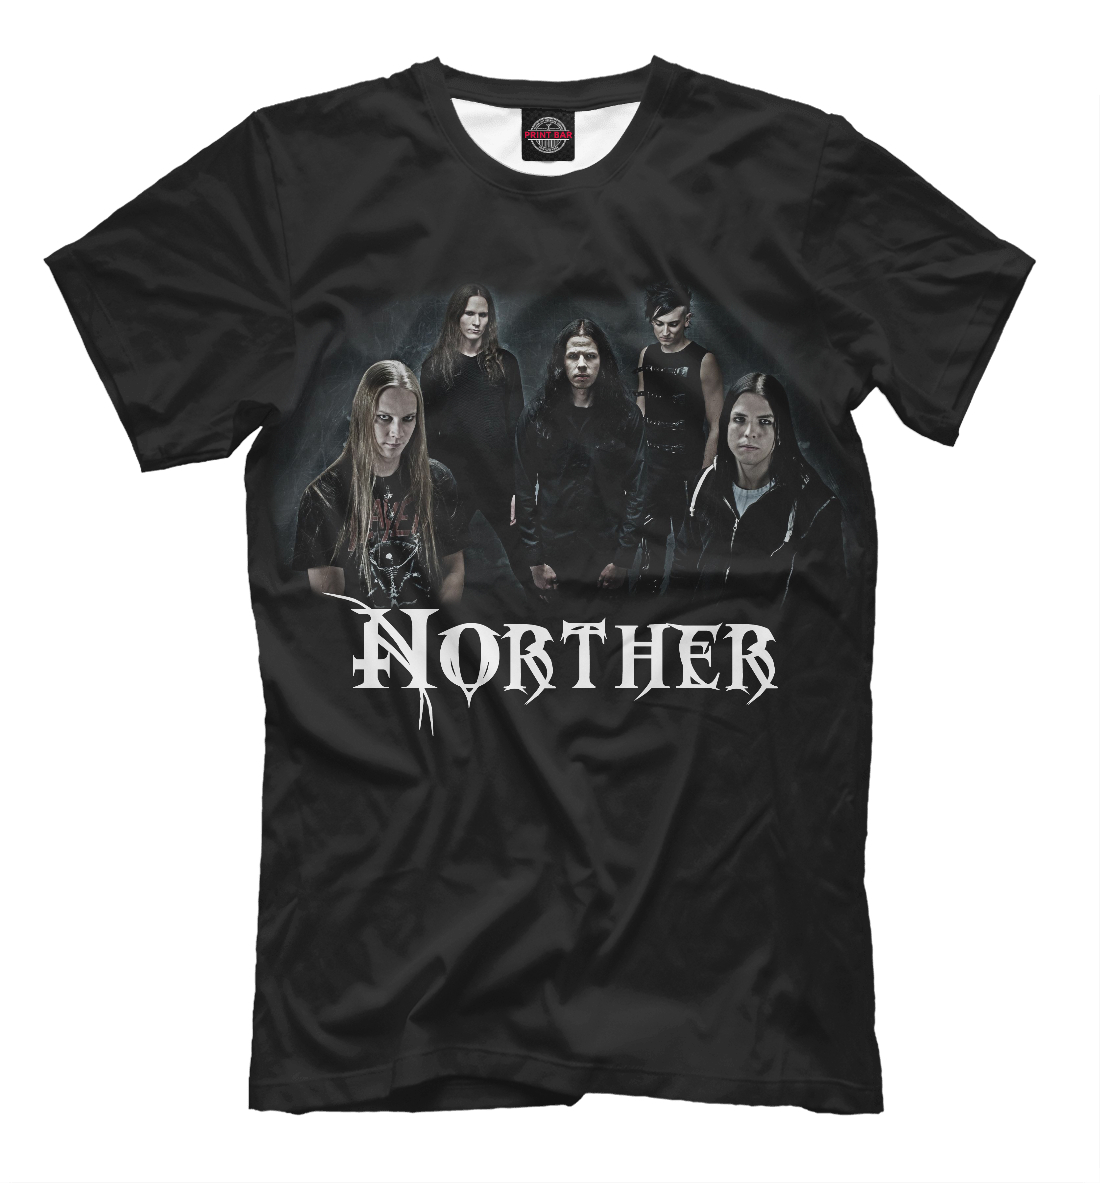 Купить Death metal группа Norther, Printbar, Футболки, MZK-229287-fut-2